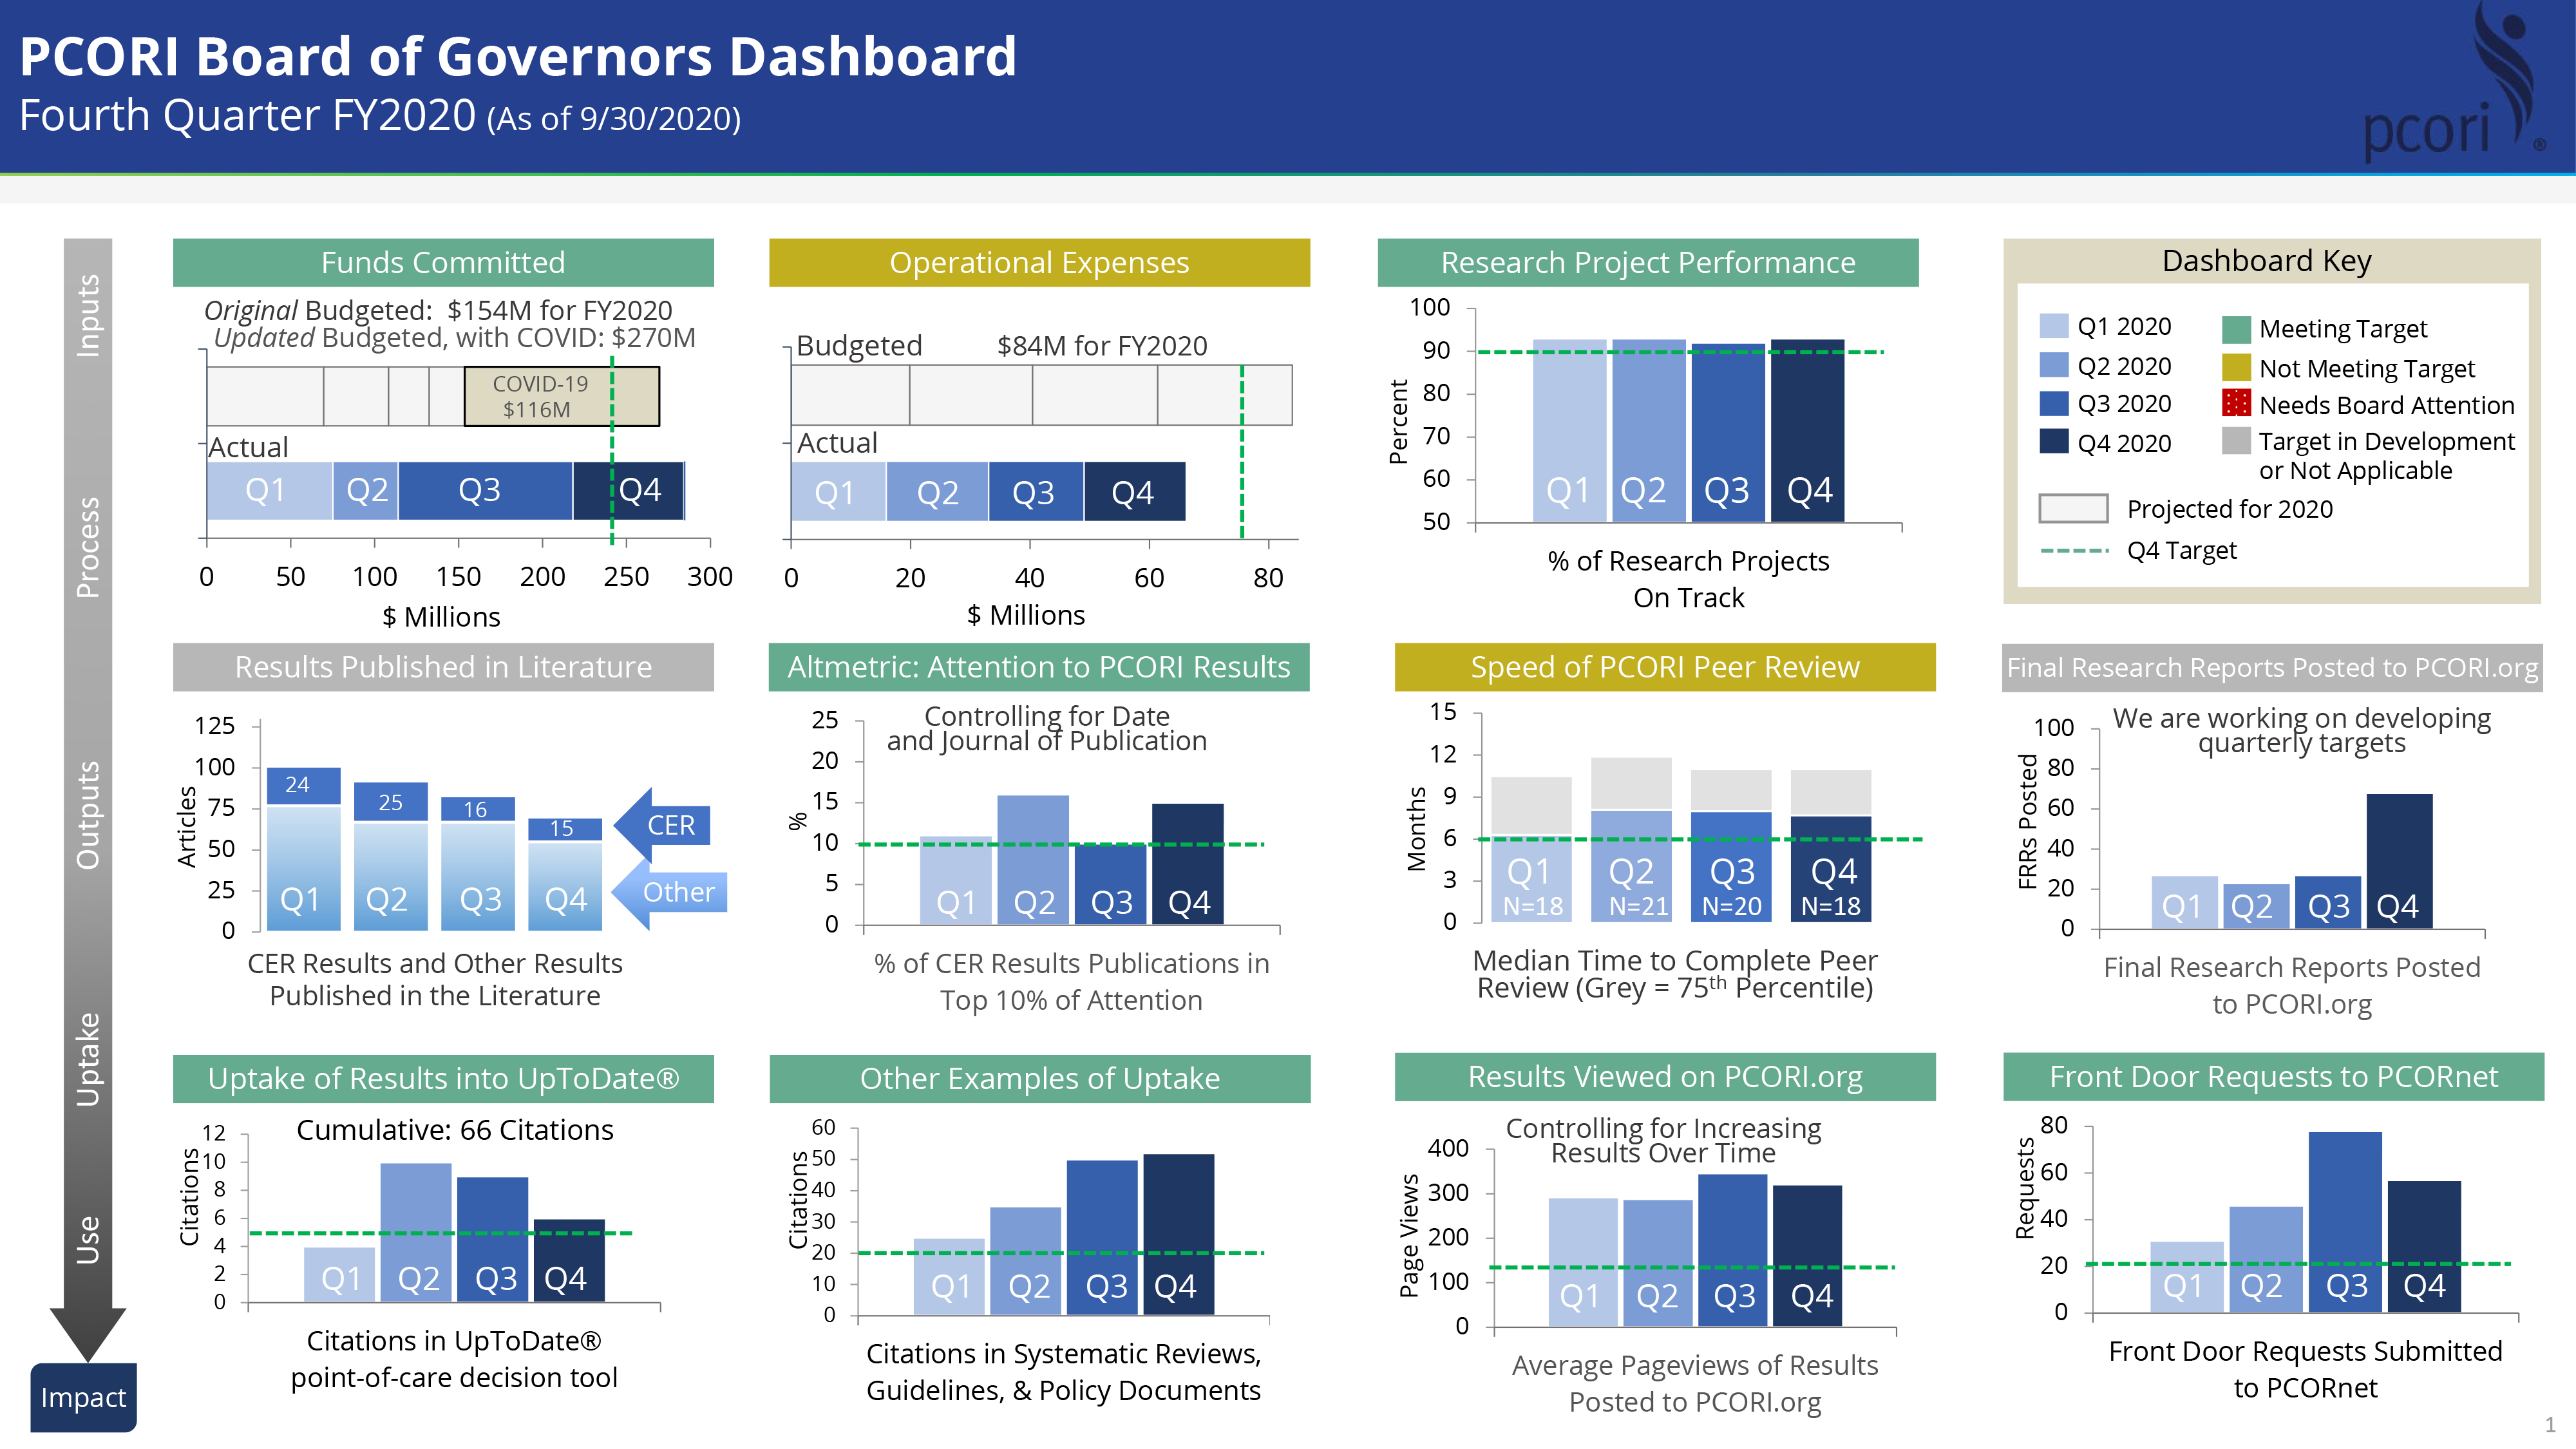 Current dashboard image shared with the Board on December 7, 2020